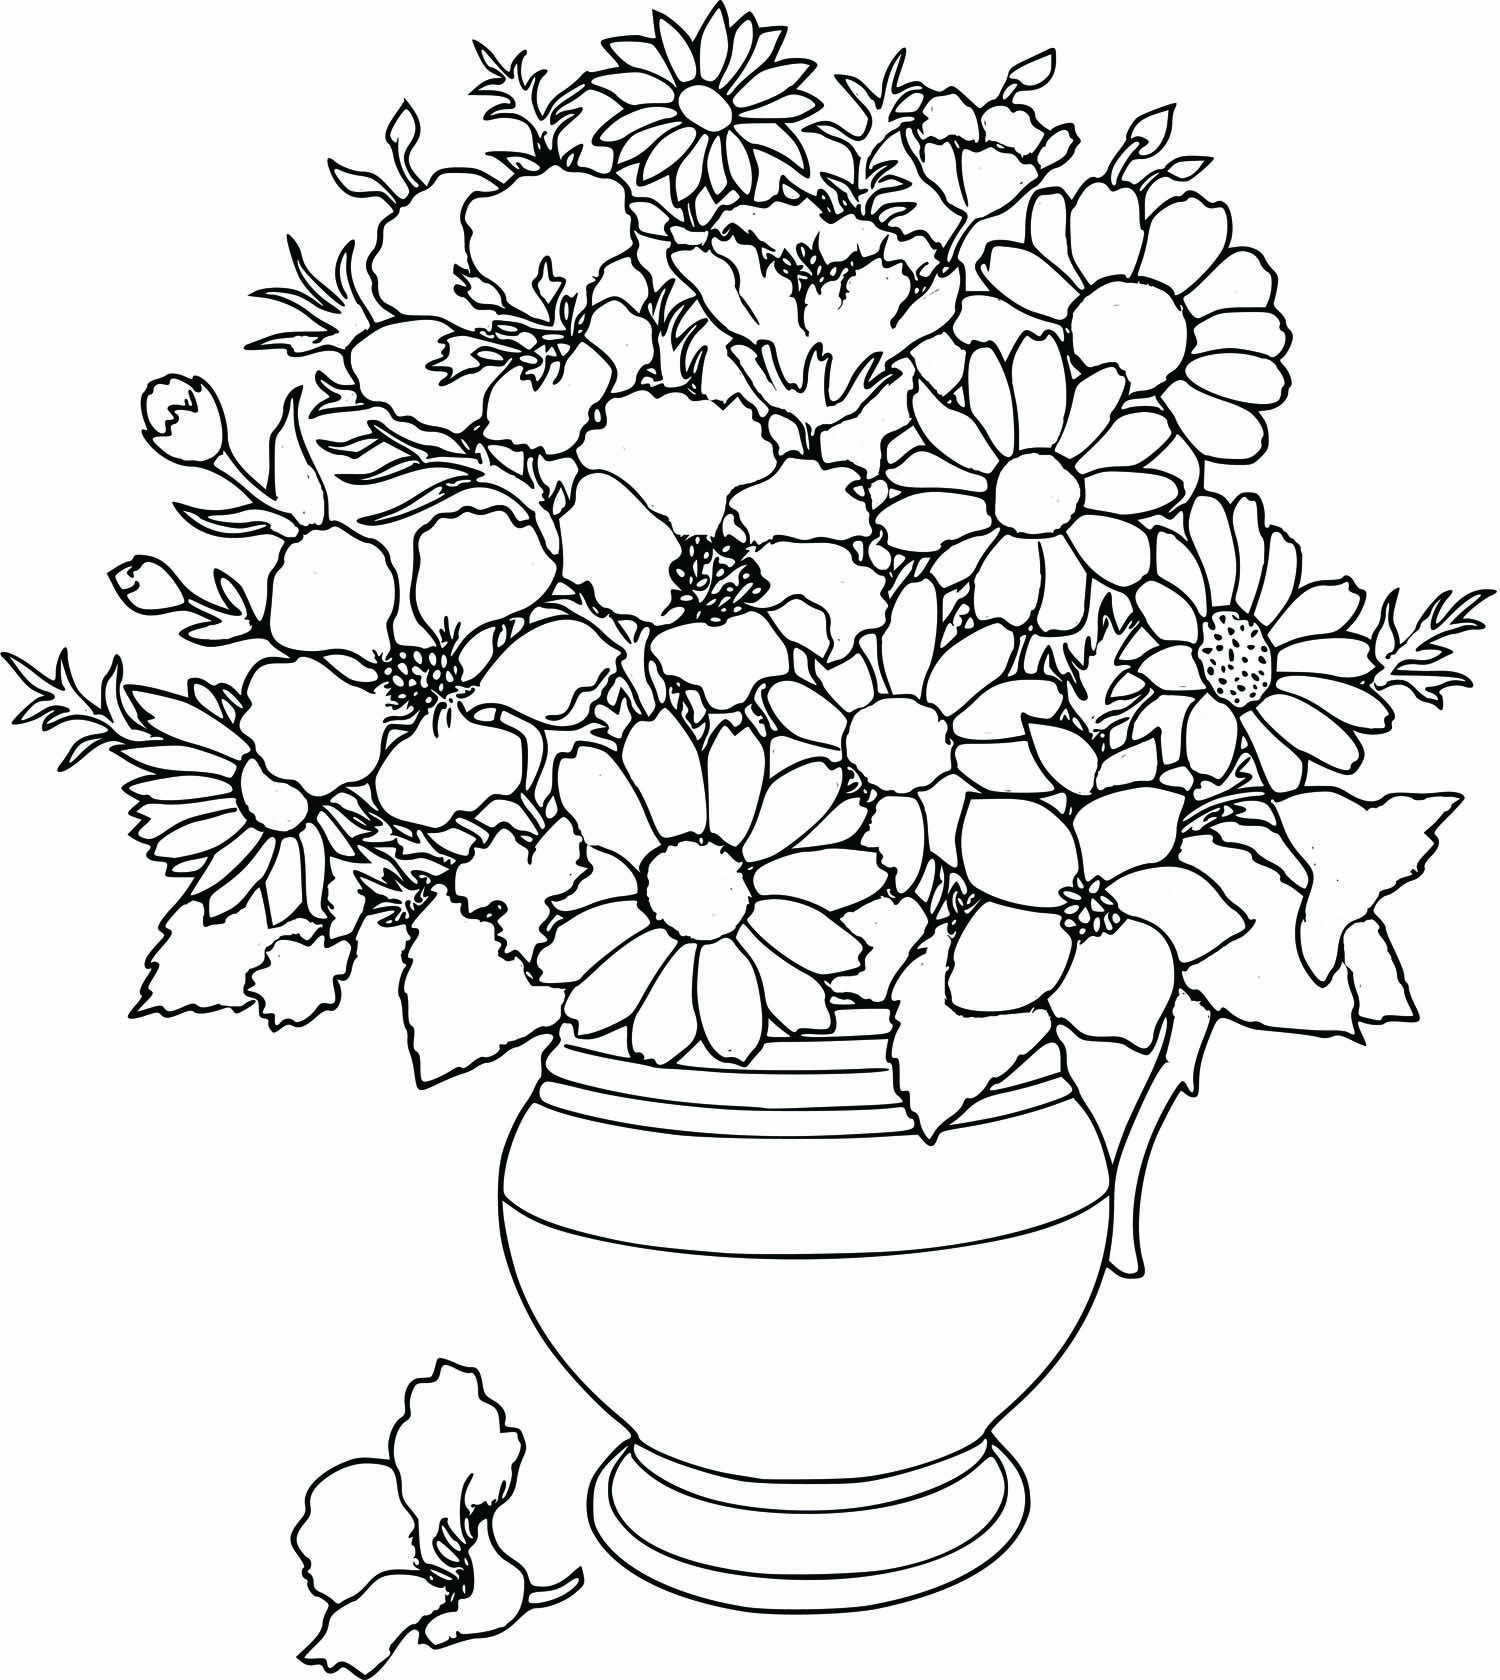 flower detailed coloring pages - photo#7